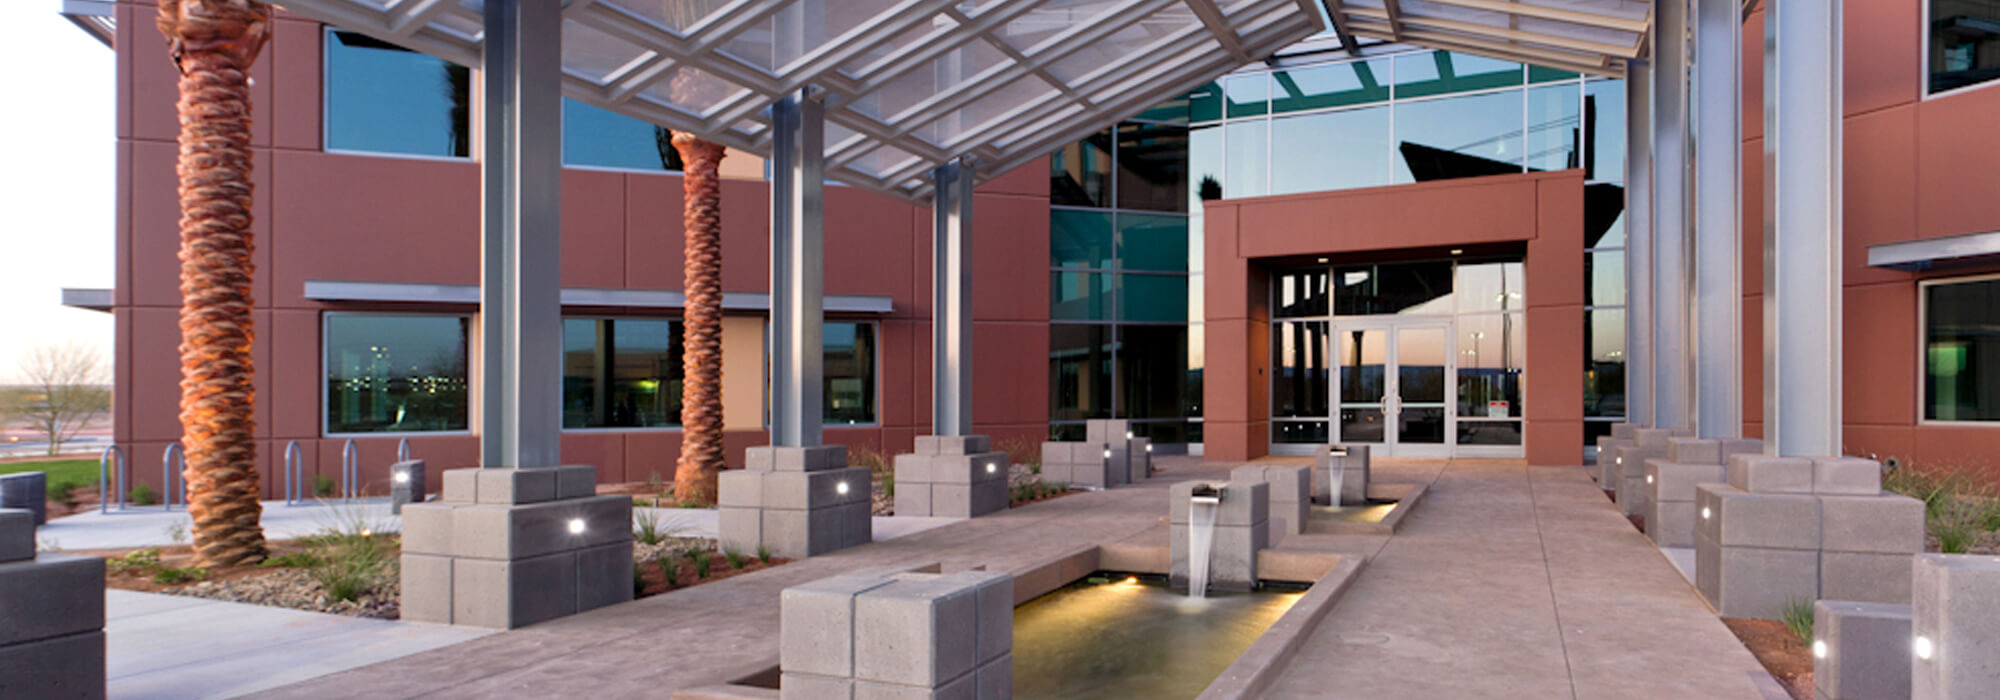 2700 Corporate Centre, Chandler, AZ